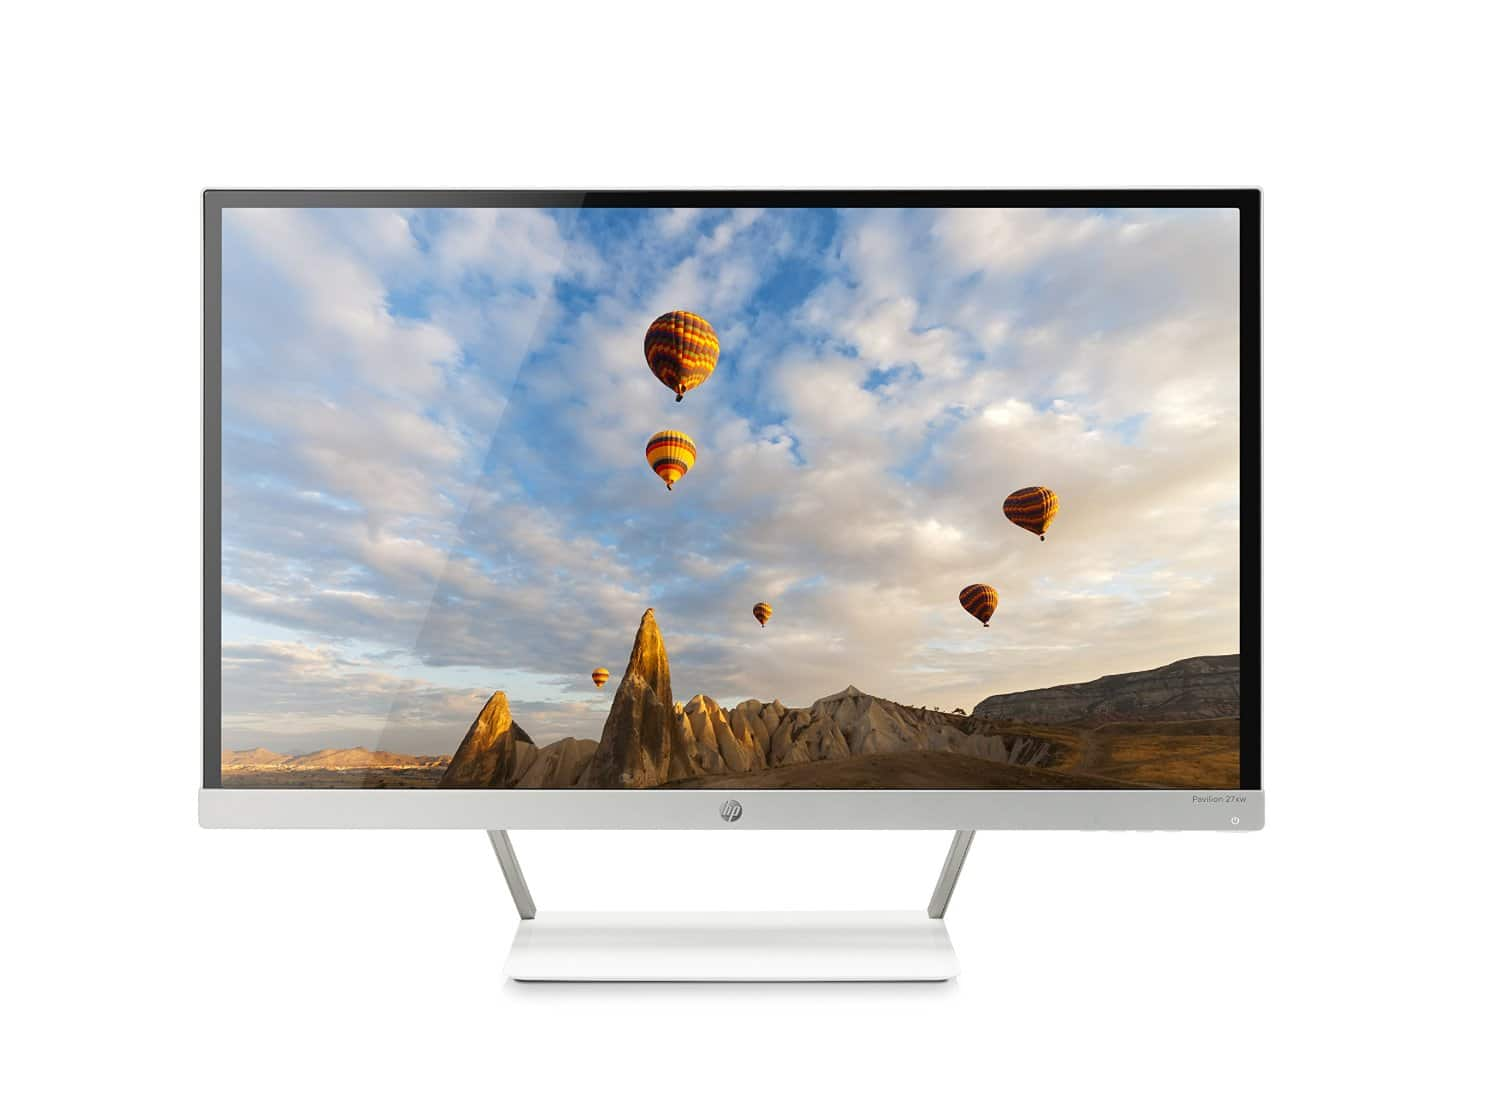 HP Pavilion 27xw 27-in IPS LED Backlit Monitor by HP on Amazon for $119